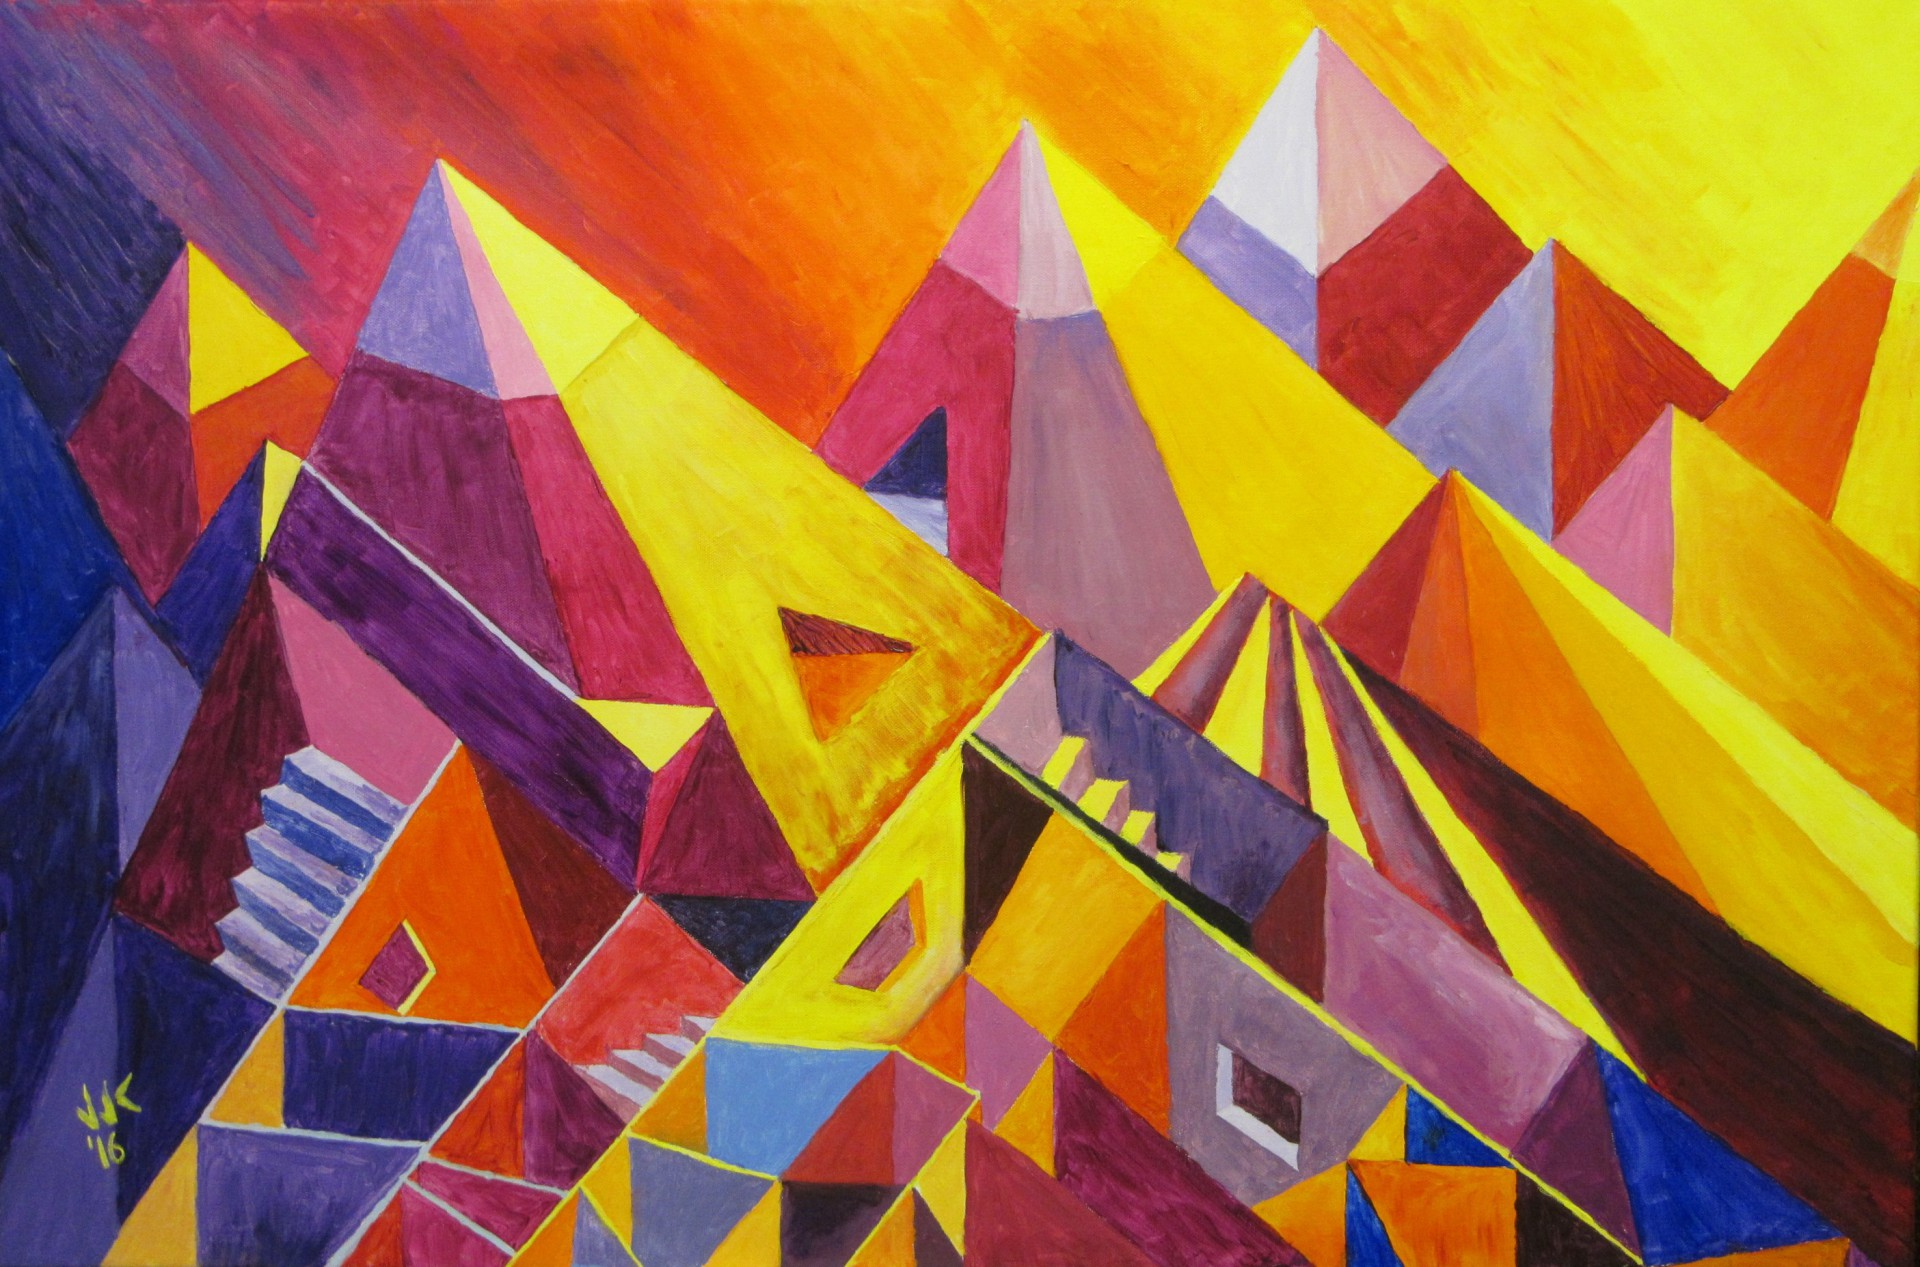 Acrylic on canvas abstract painting of the Rocky Mountains in sunrise and sunset colors.